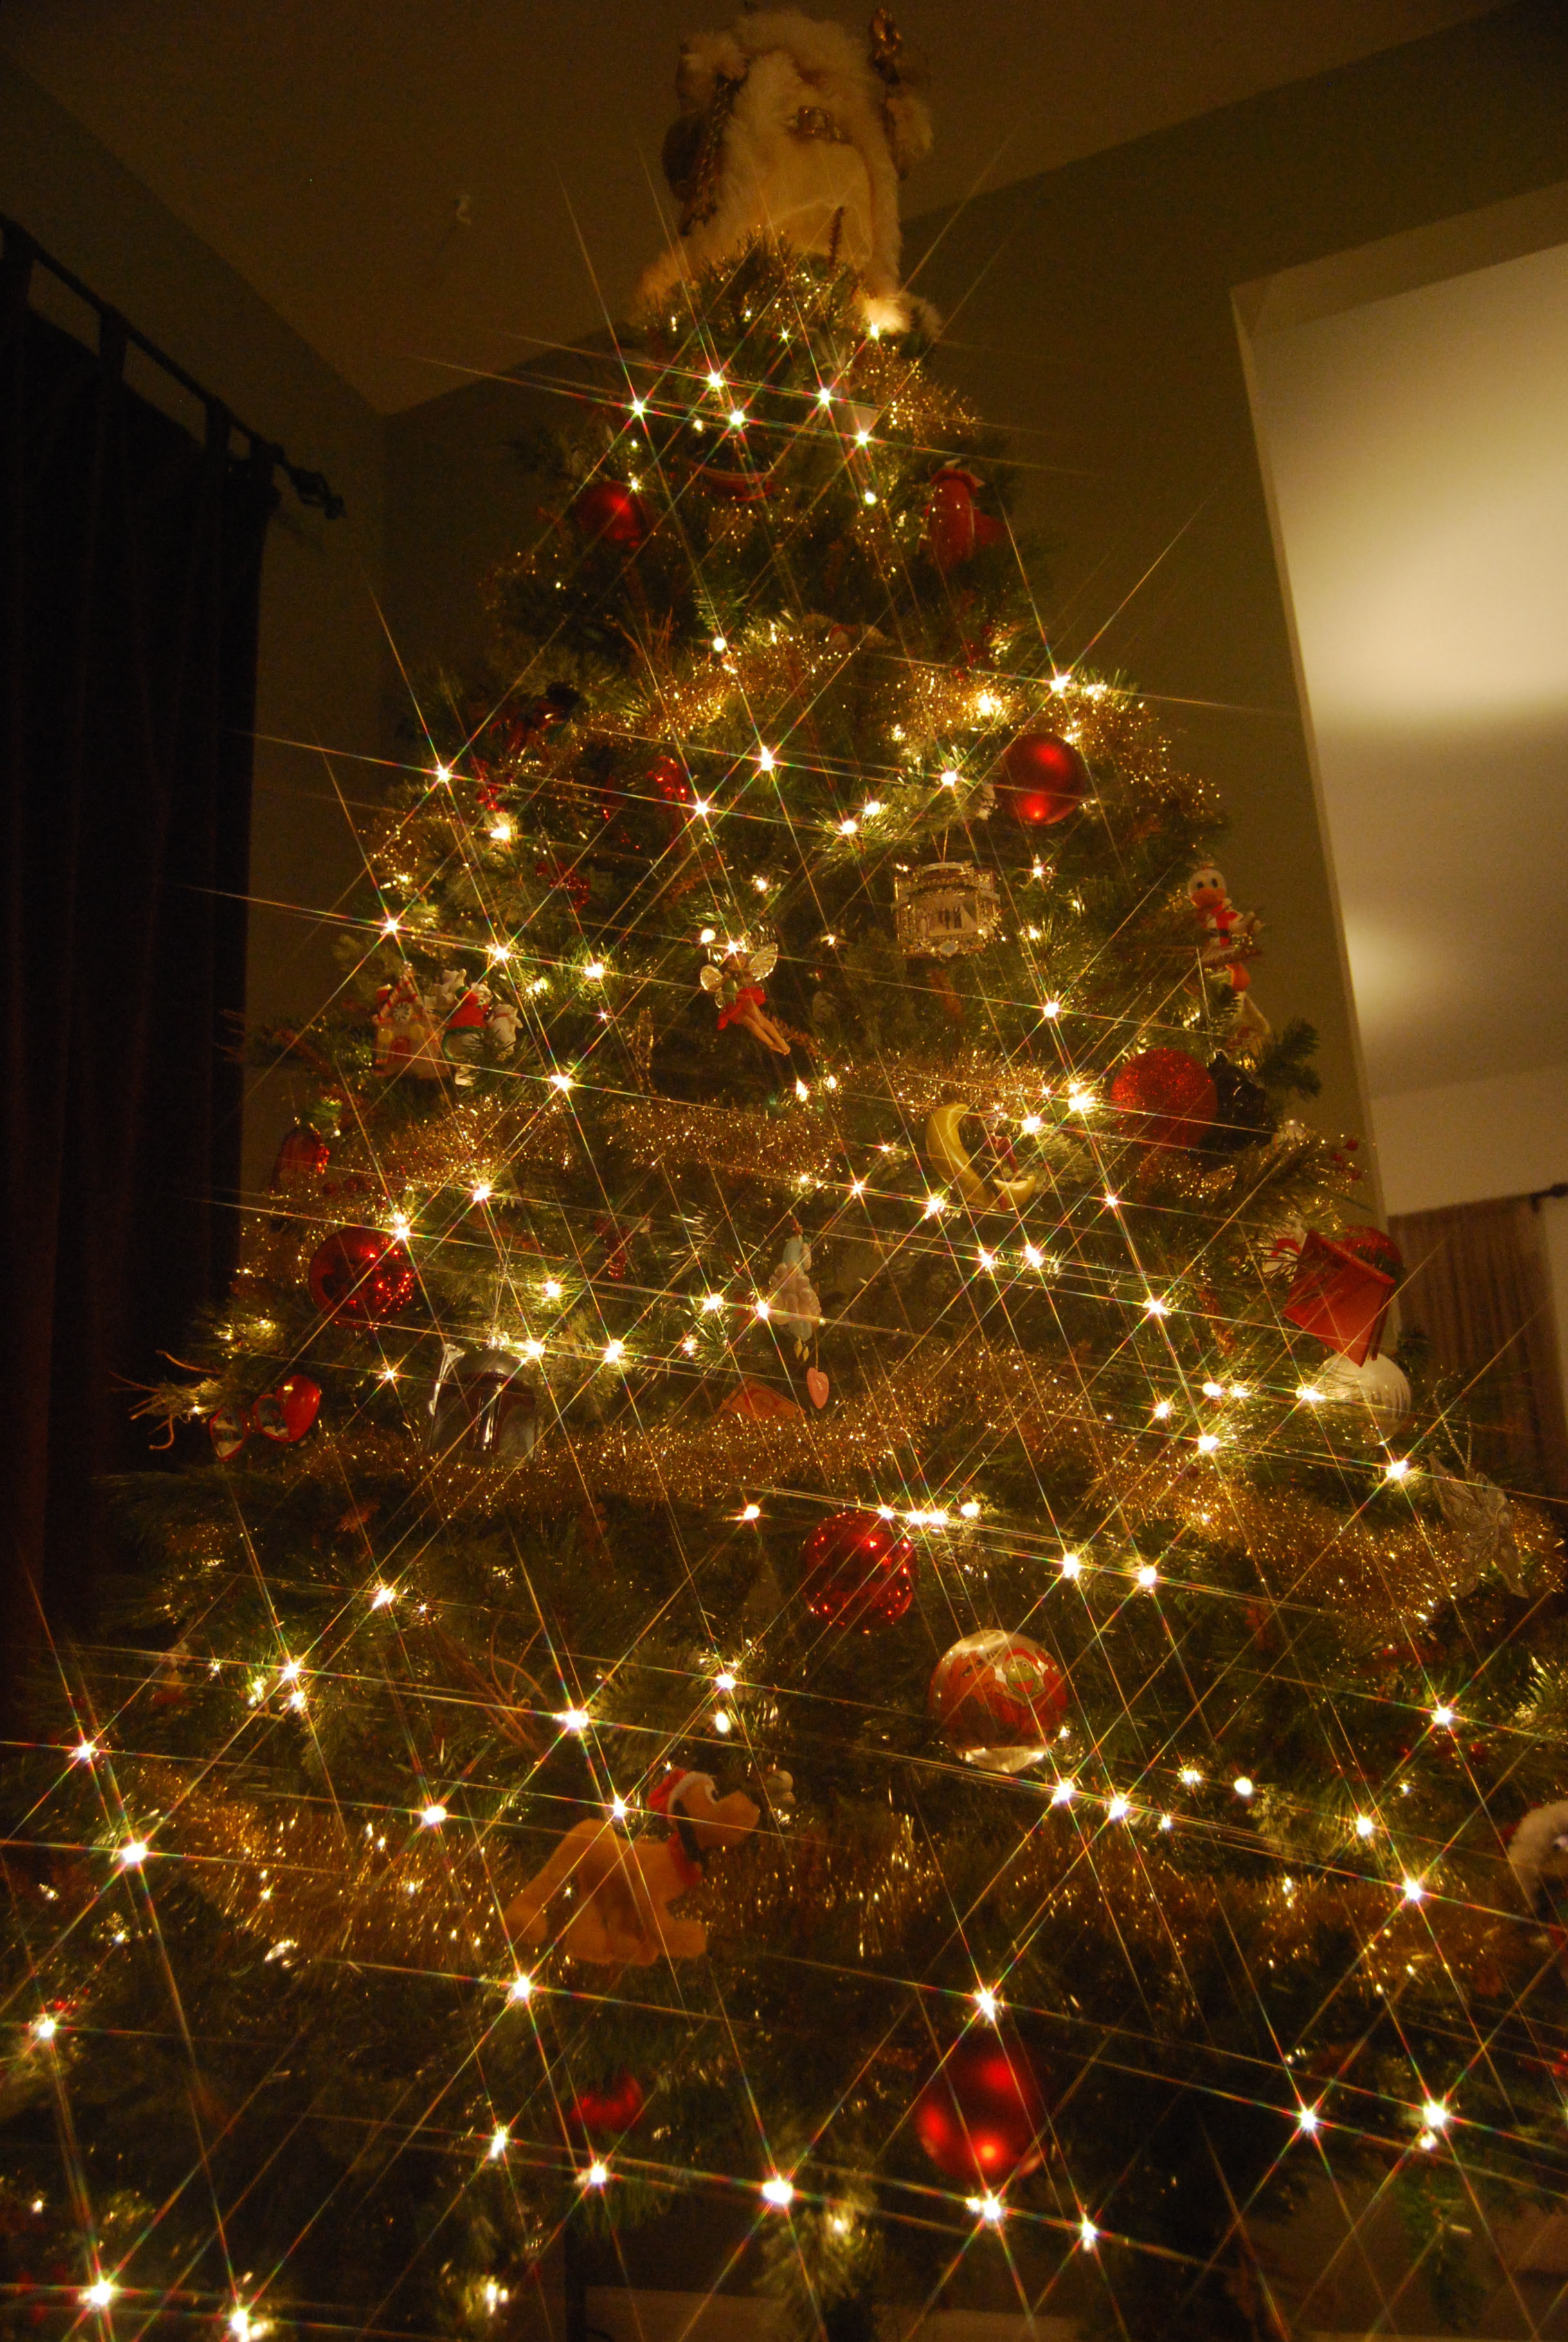 Twinkling Christmas tree